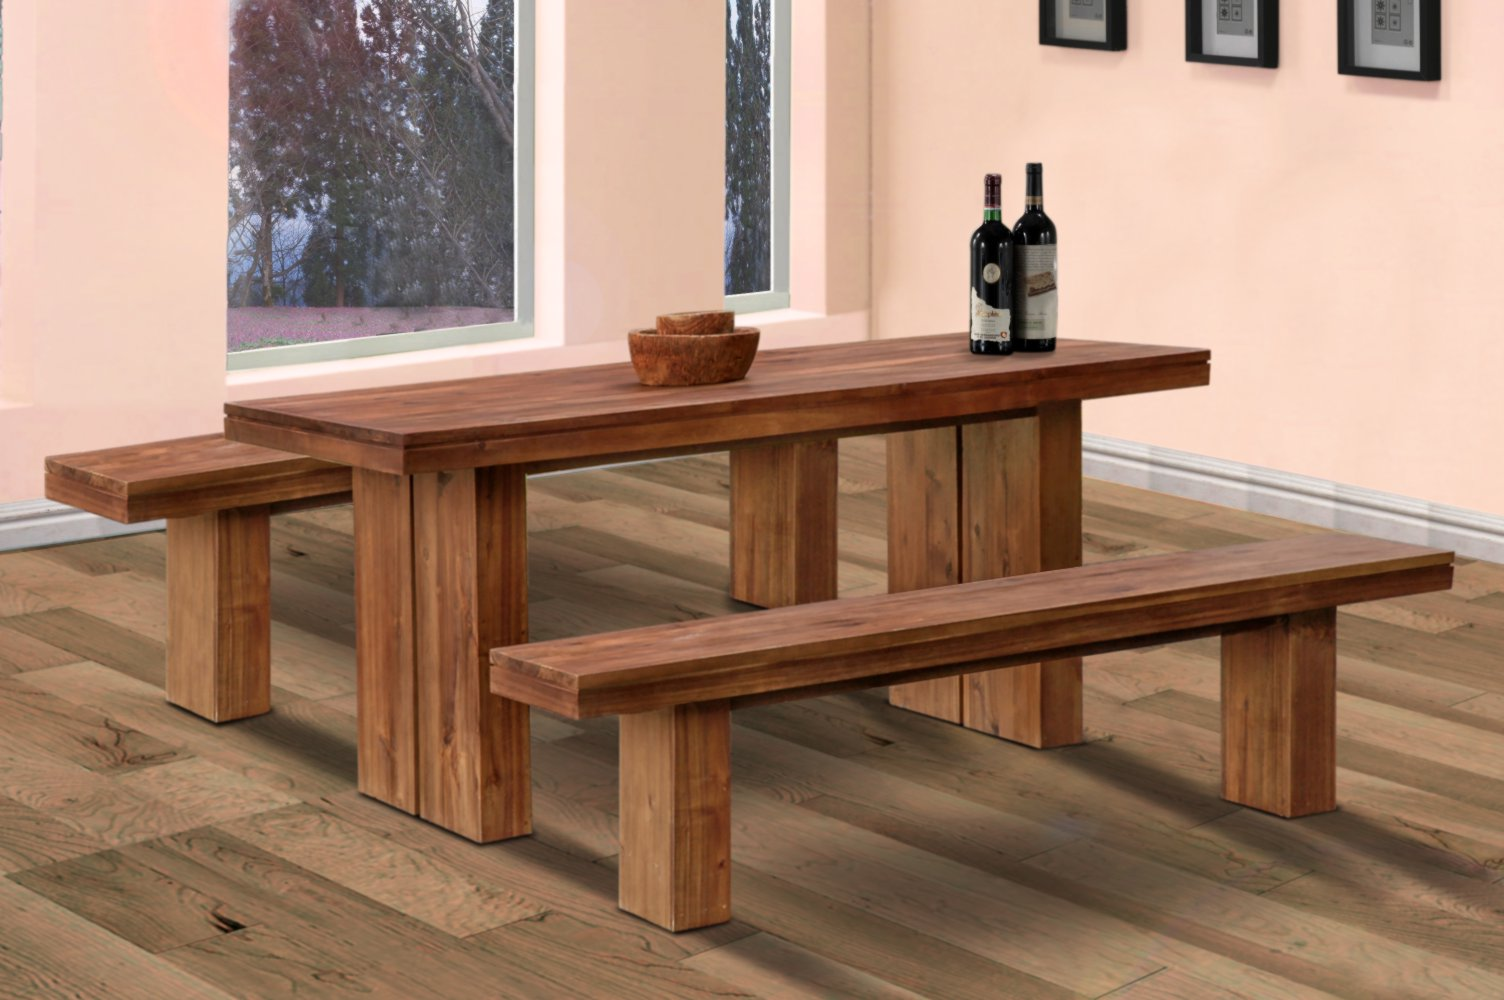 Danielle dining table and bench java valentti for Kitchen table with bench